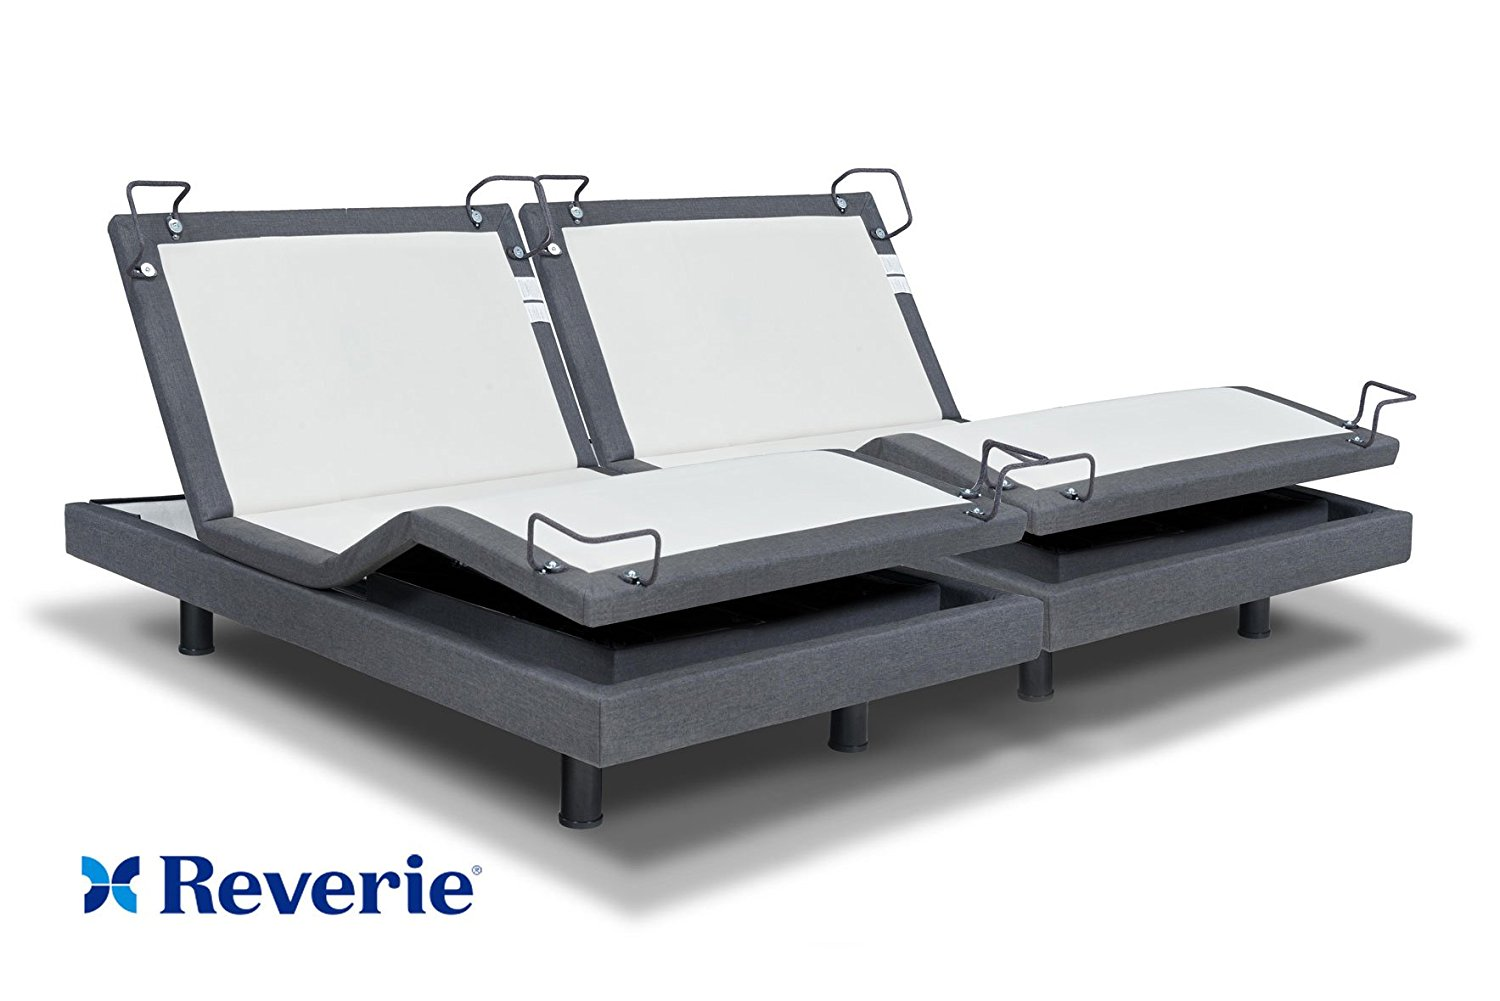 Reverie 7S Adjustable Bed Wall Hugger